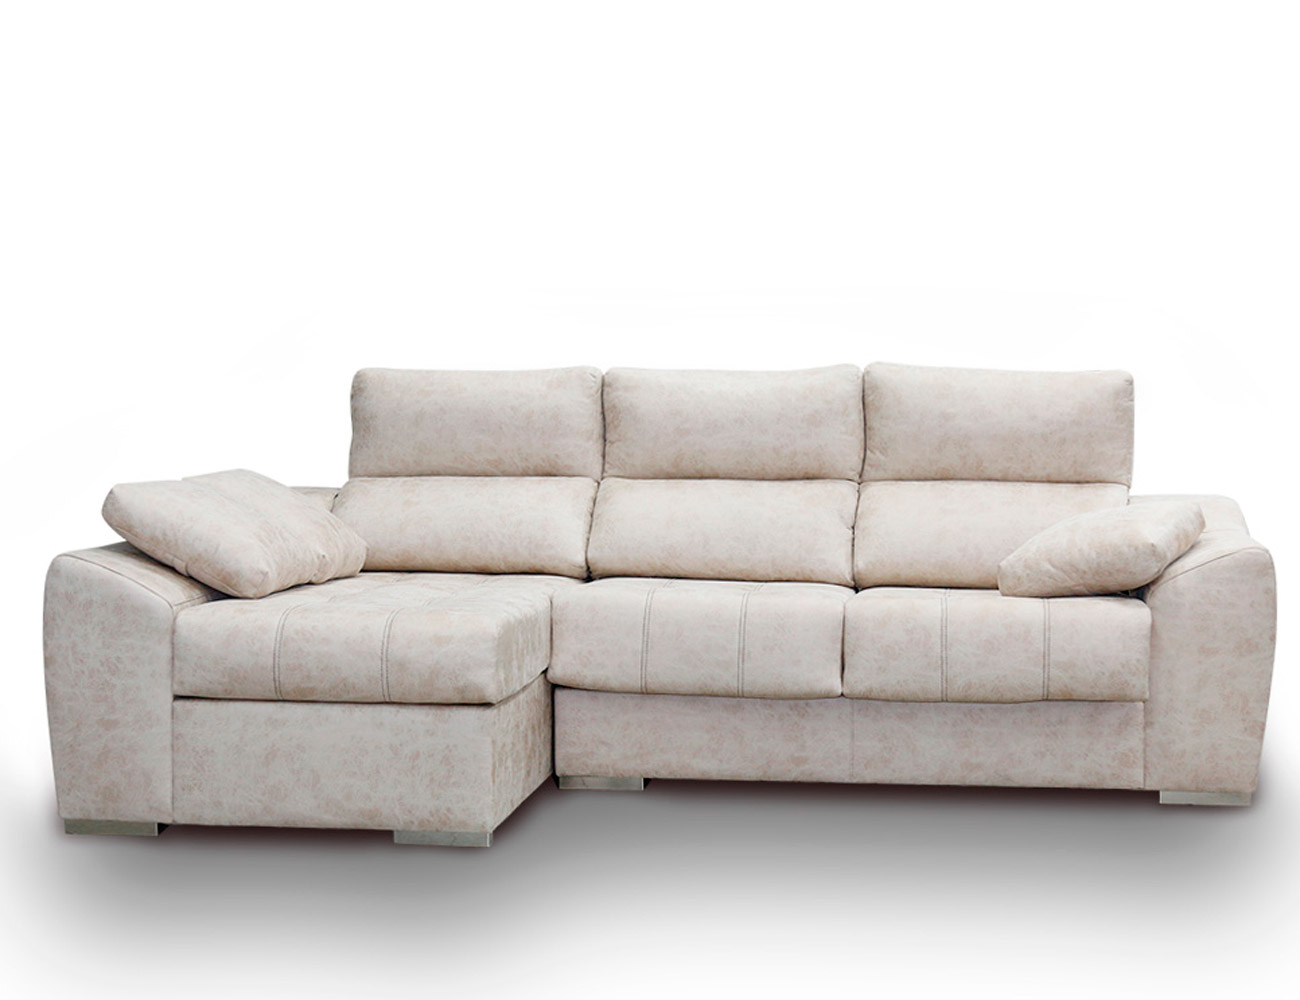 Sofa chaiselongue anti manchas beig blanco14